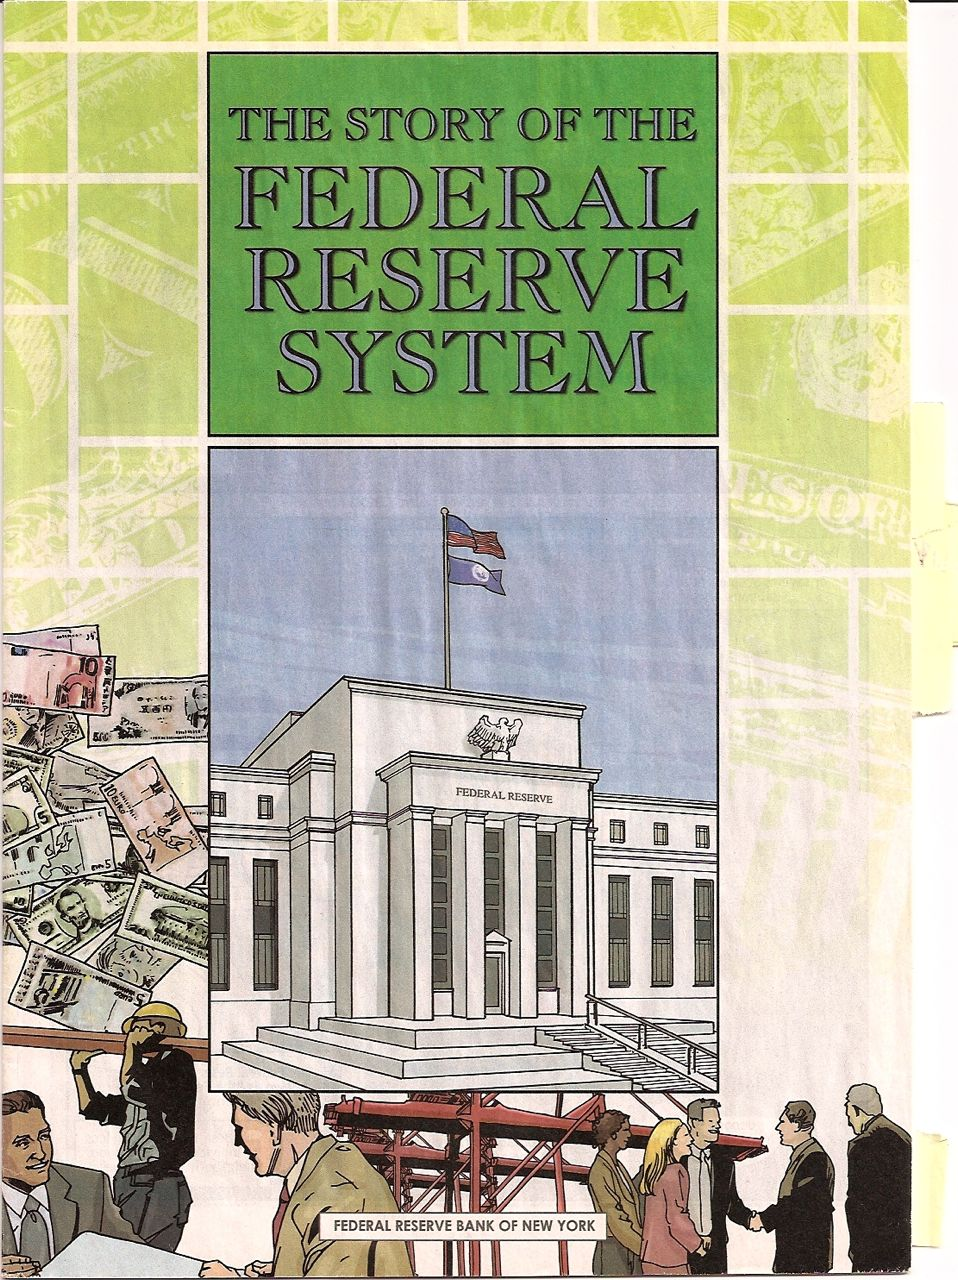 the history of the federal reserve system of the united states As stated in the federal reserve system purposes & functions: history prior to the fed's the united states experienced a number of economic downturns and.